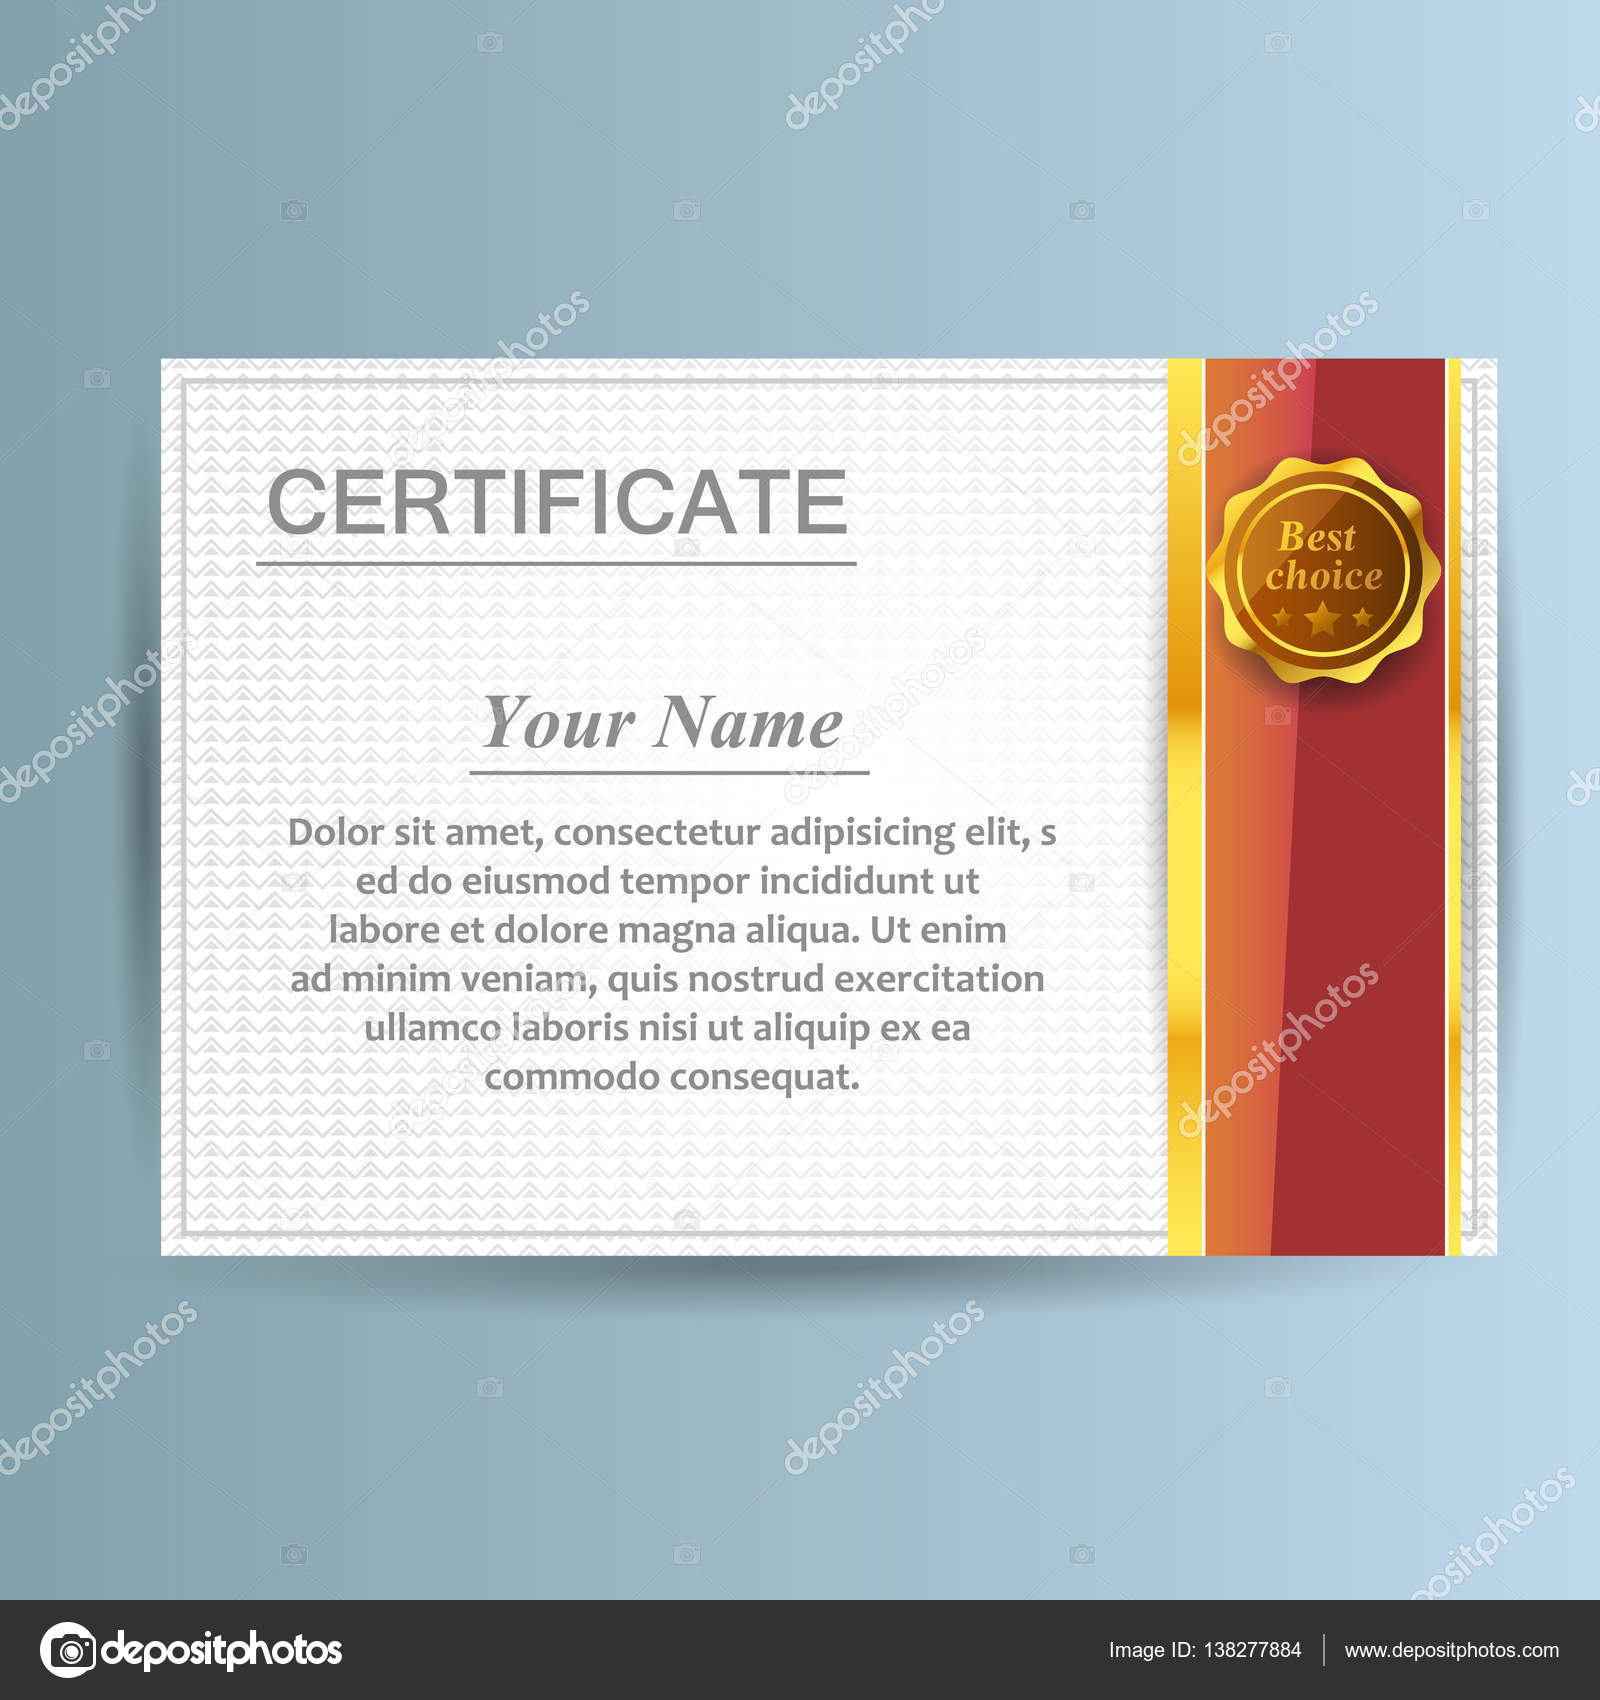 Vector certificate template design business award solution stock vector certificate template design business award solution stock vector cheaphphosting Images